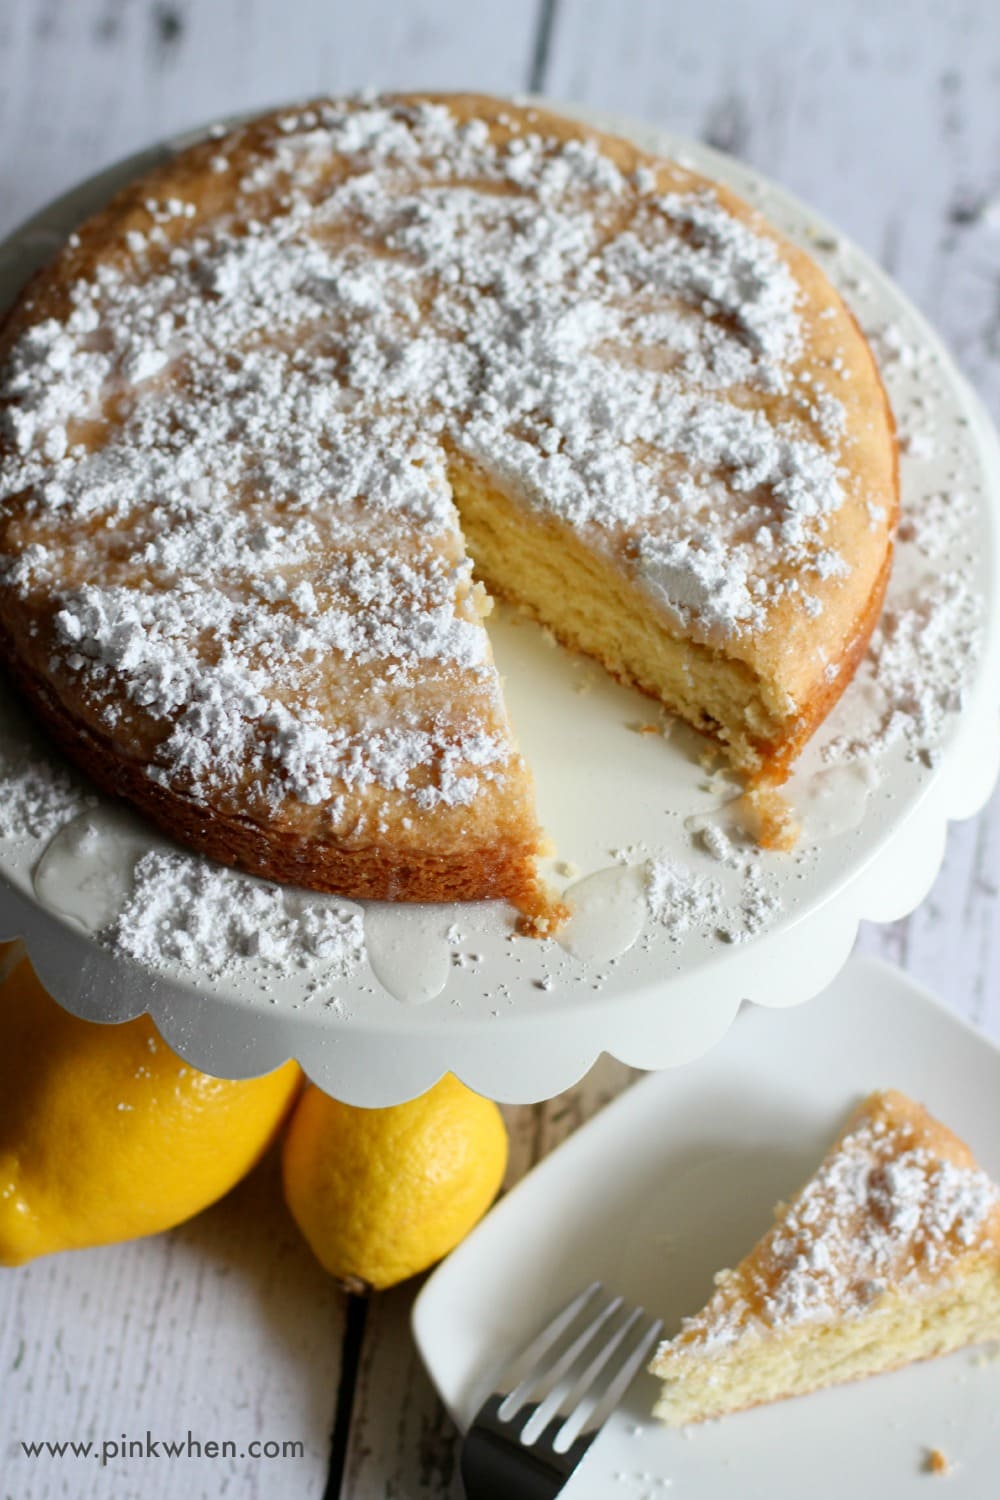 Pinterest Cake Recipe Using Buttermilk